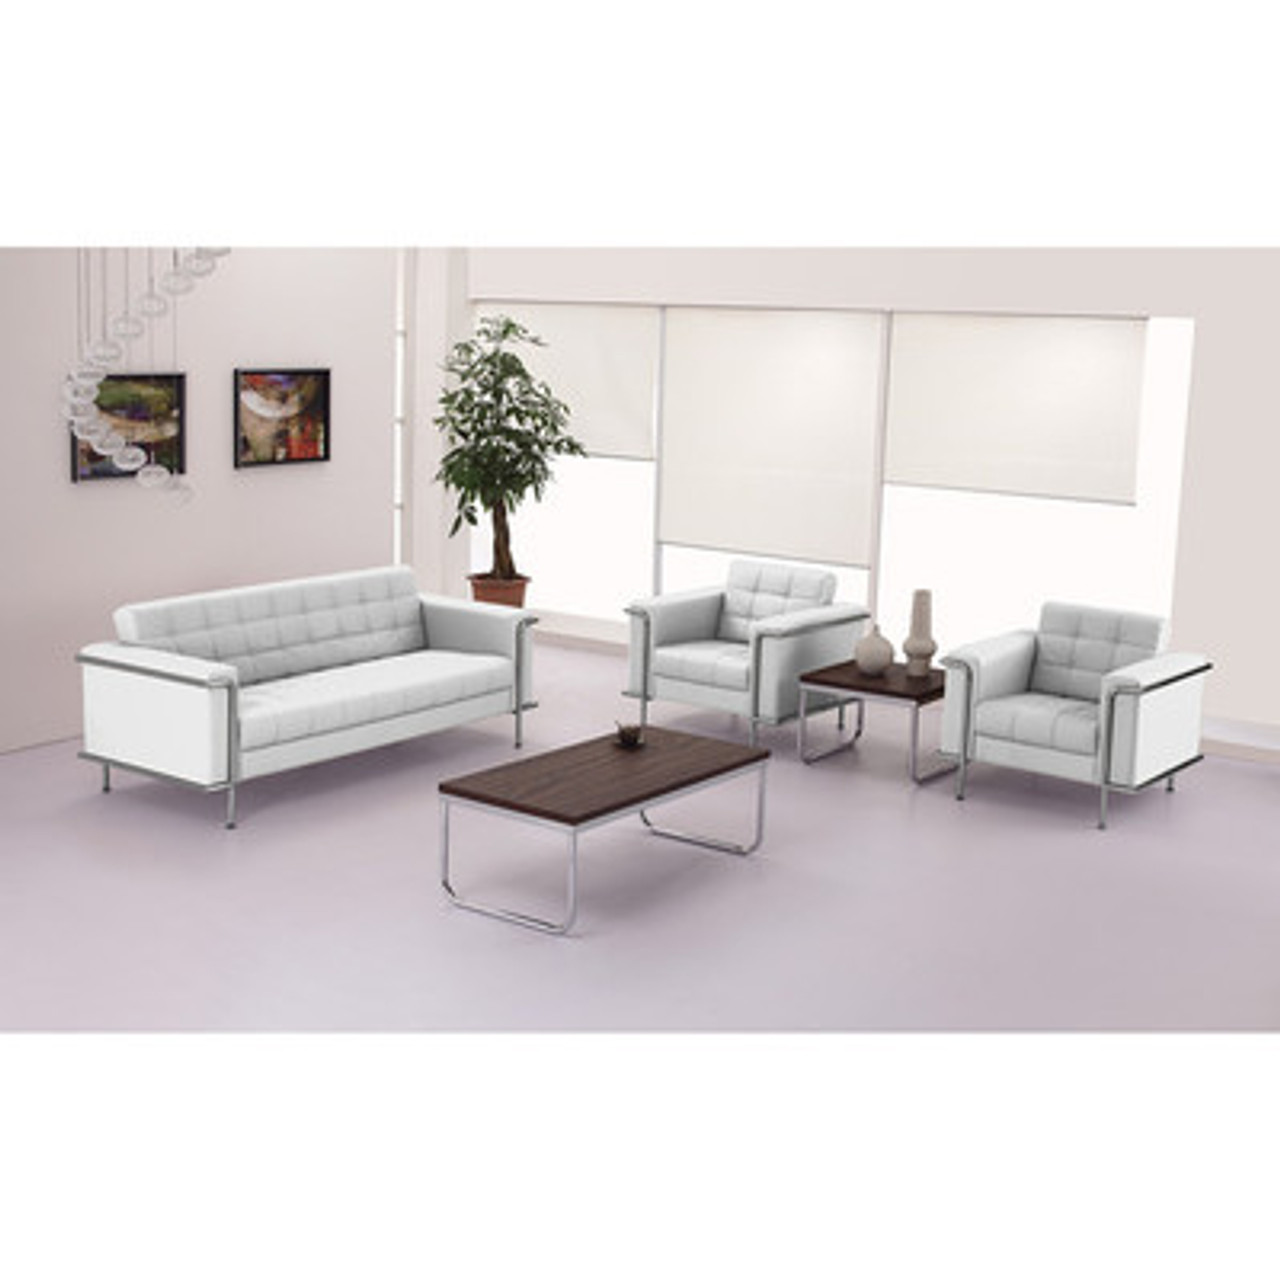 3pc Modern Leather Office Reception Sofa Set, FF-0447-12-S1